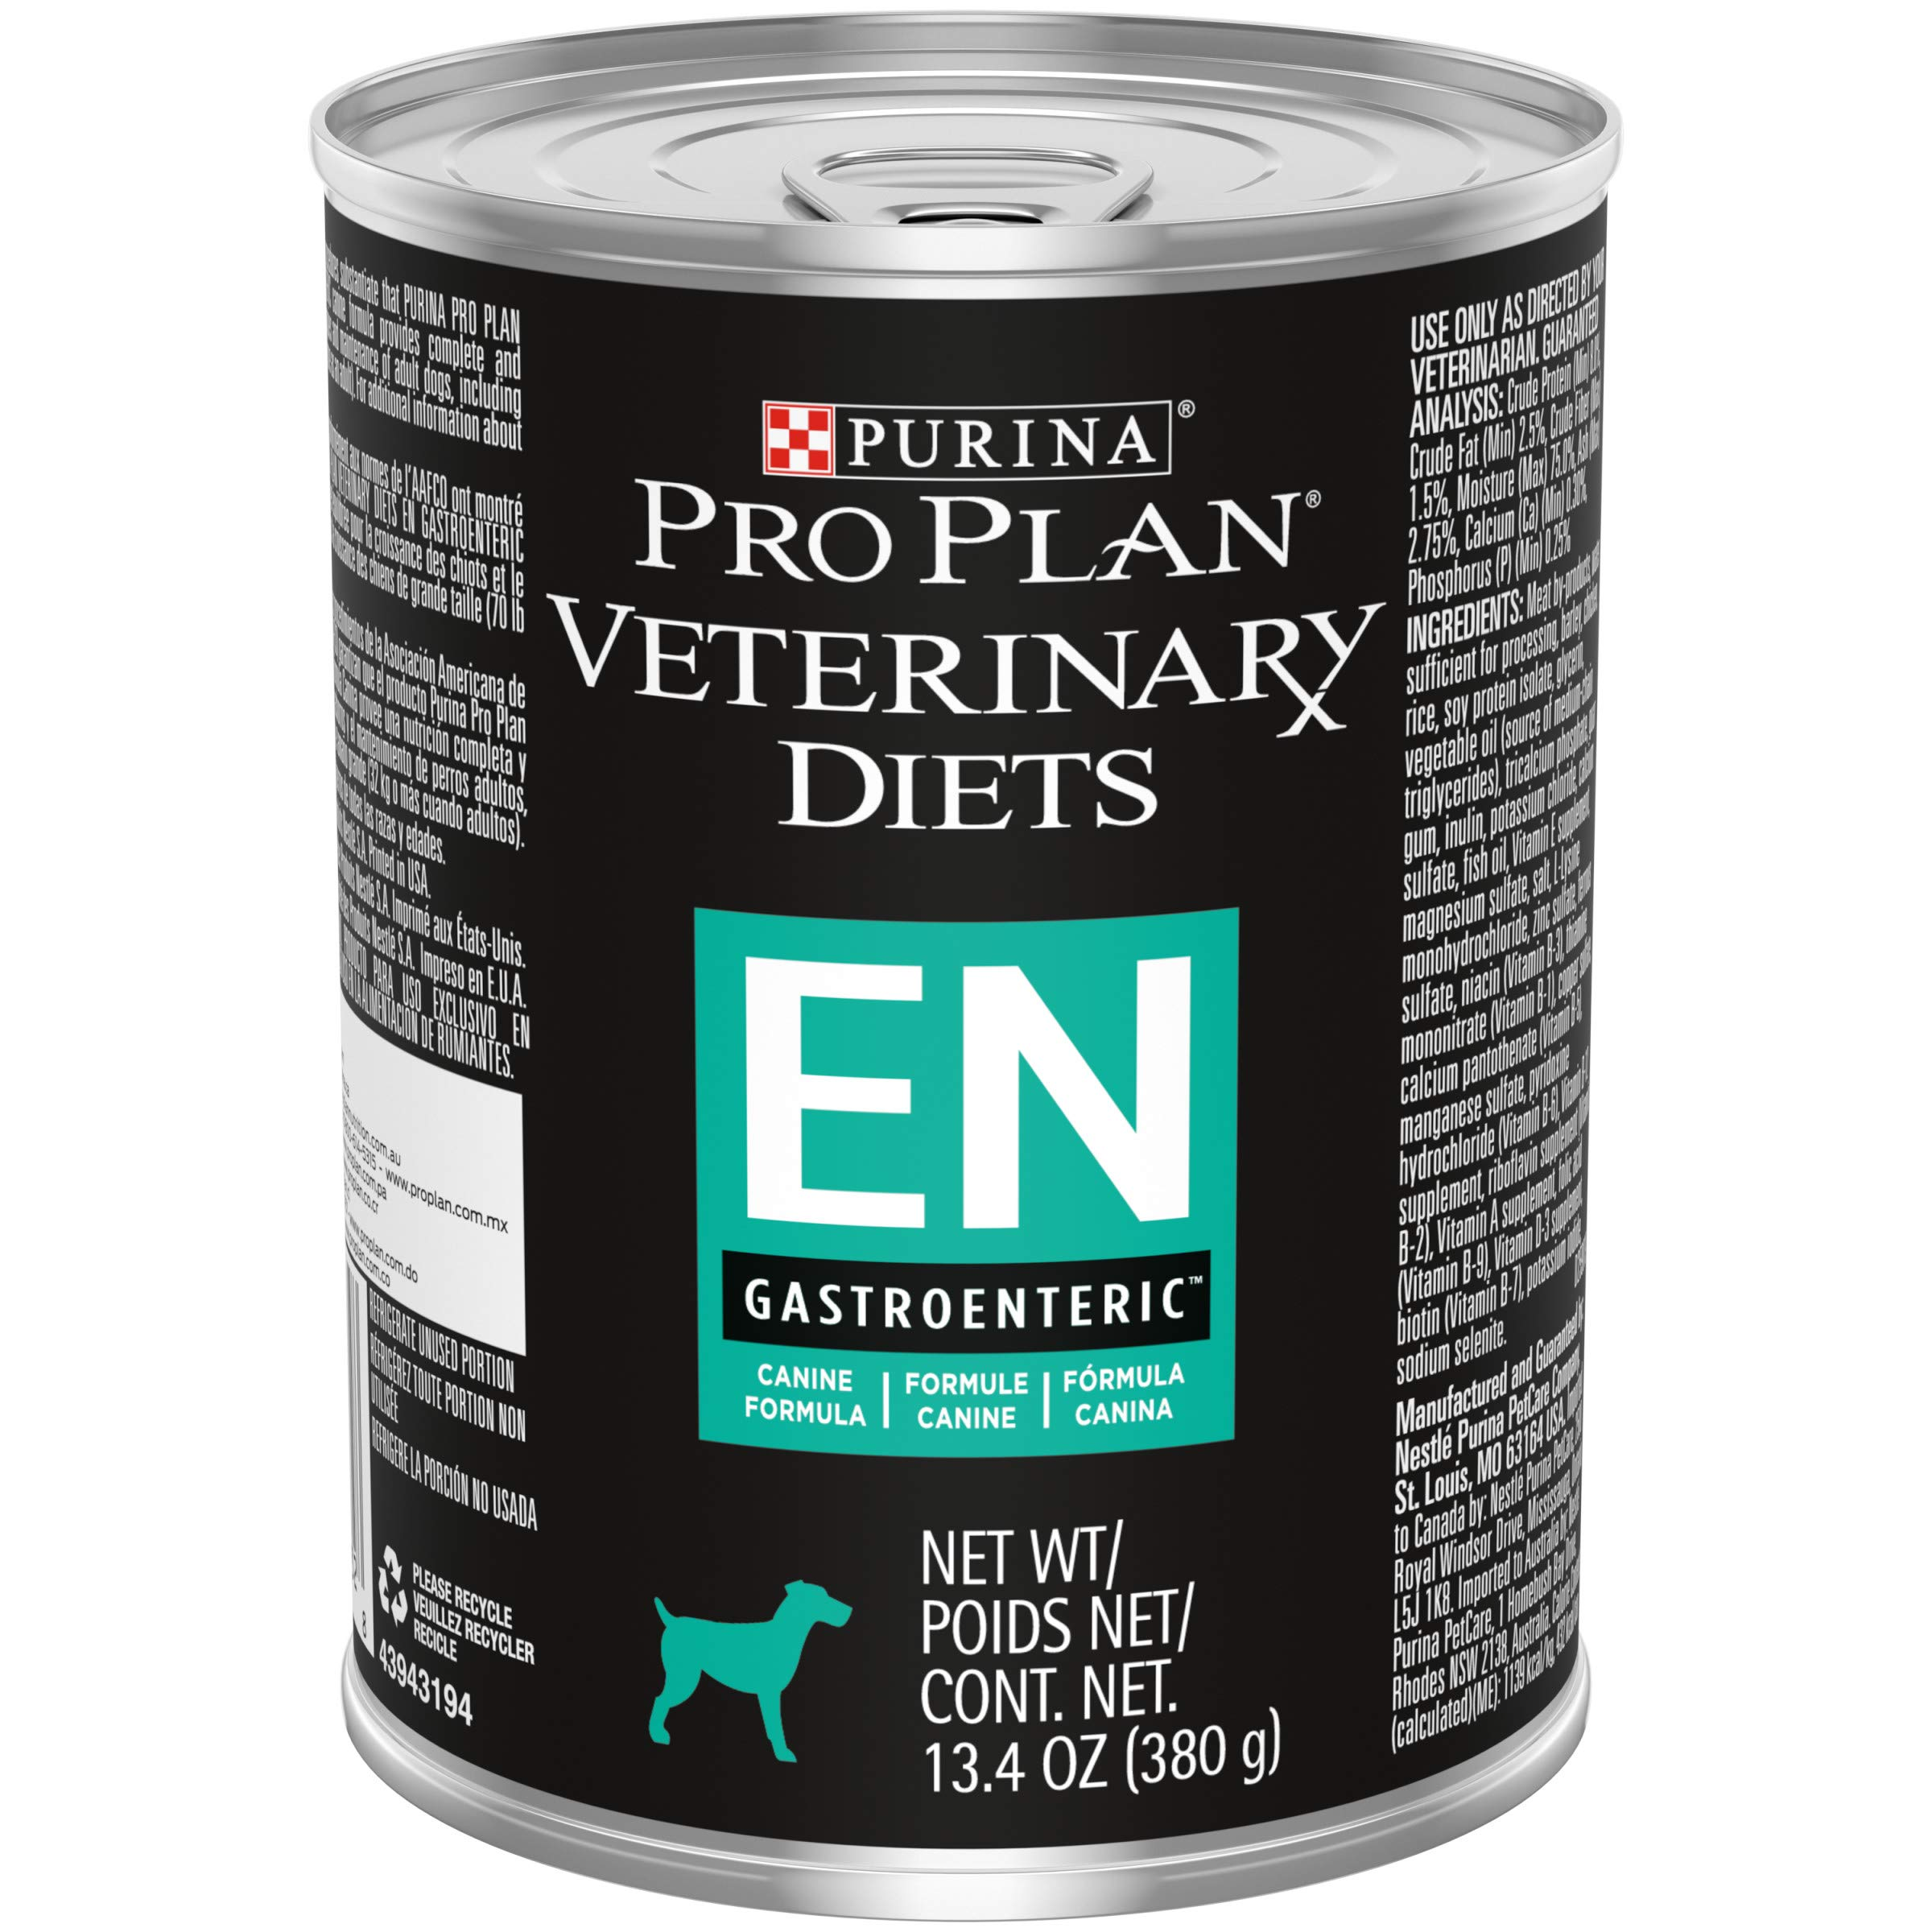 Purina Pro Plan Wet Dog Food, Veterinary Diets EN Gastroenteric Canine Formula - (12) 13.4 oz. Cans by Purina Veterinary Diets